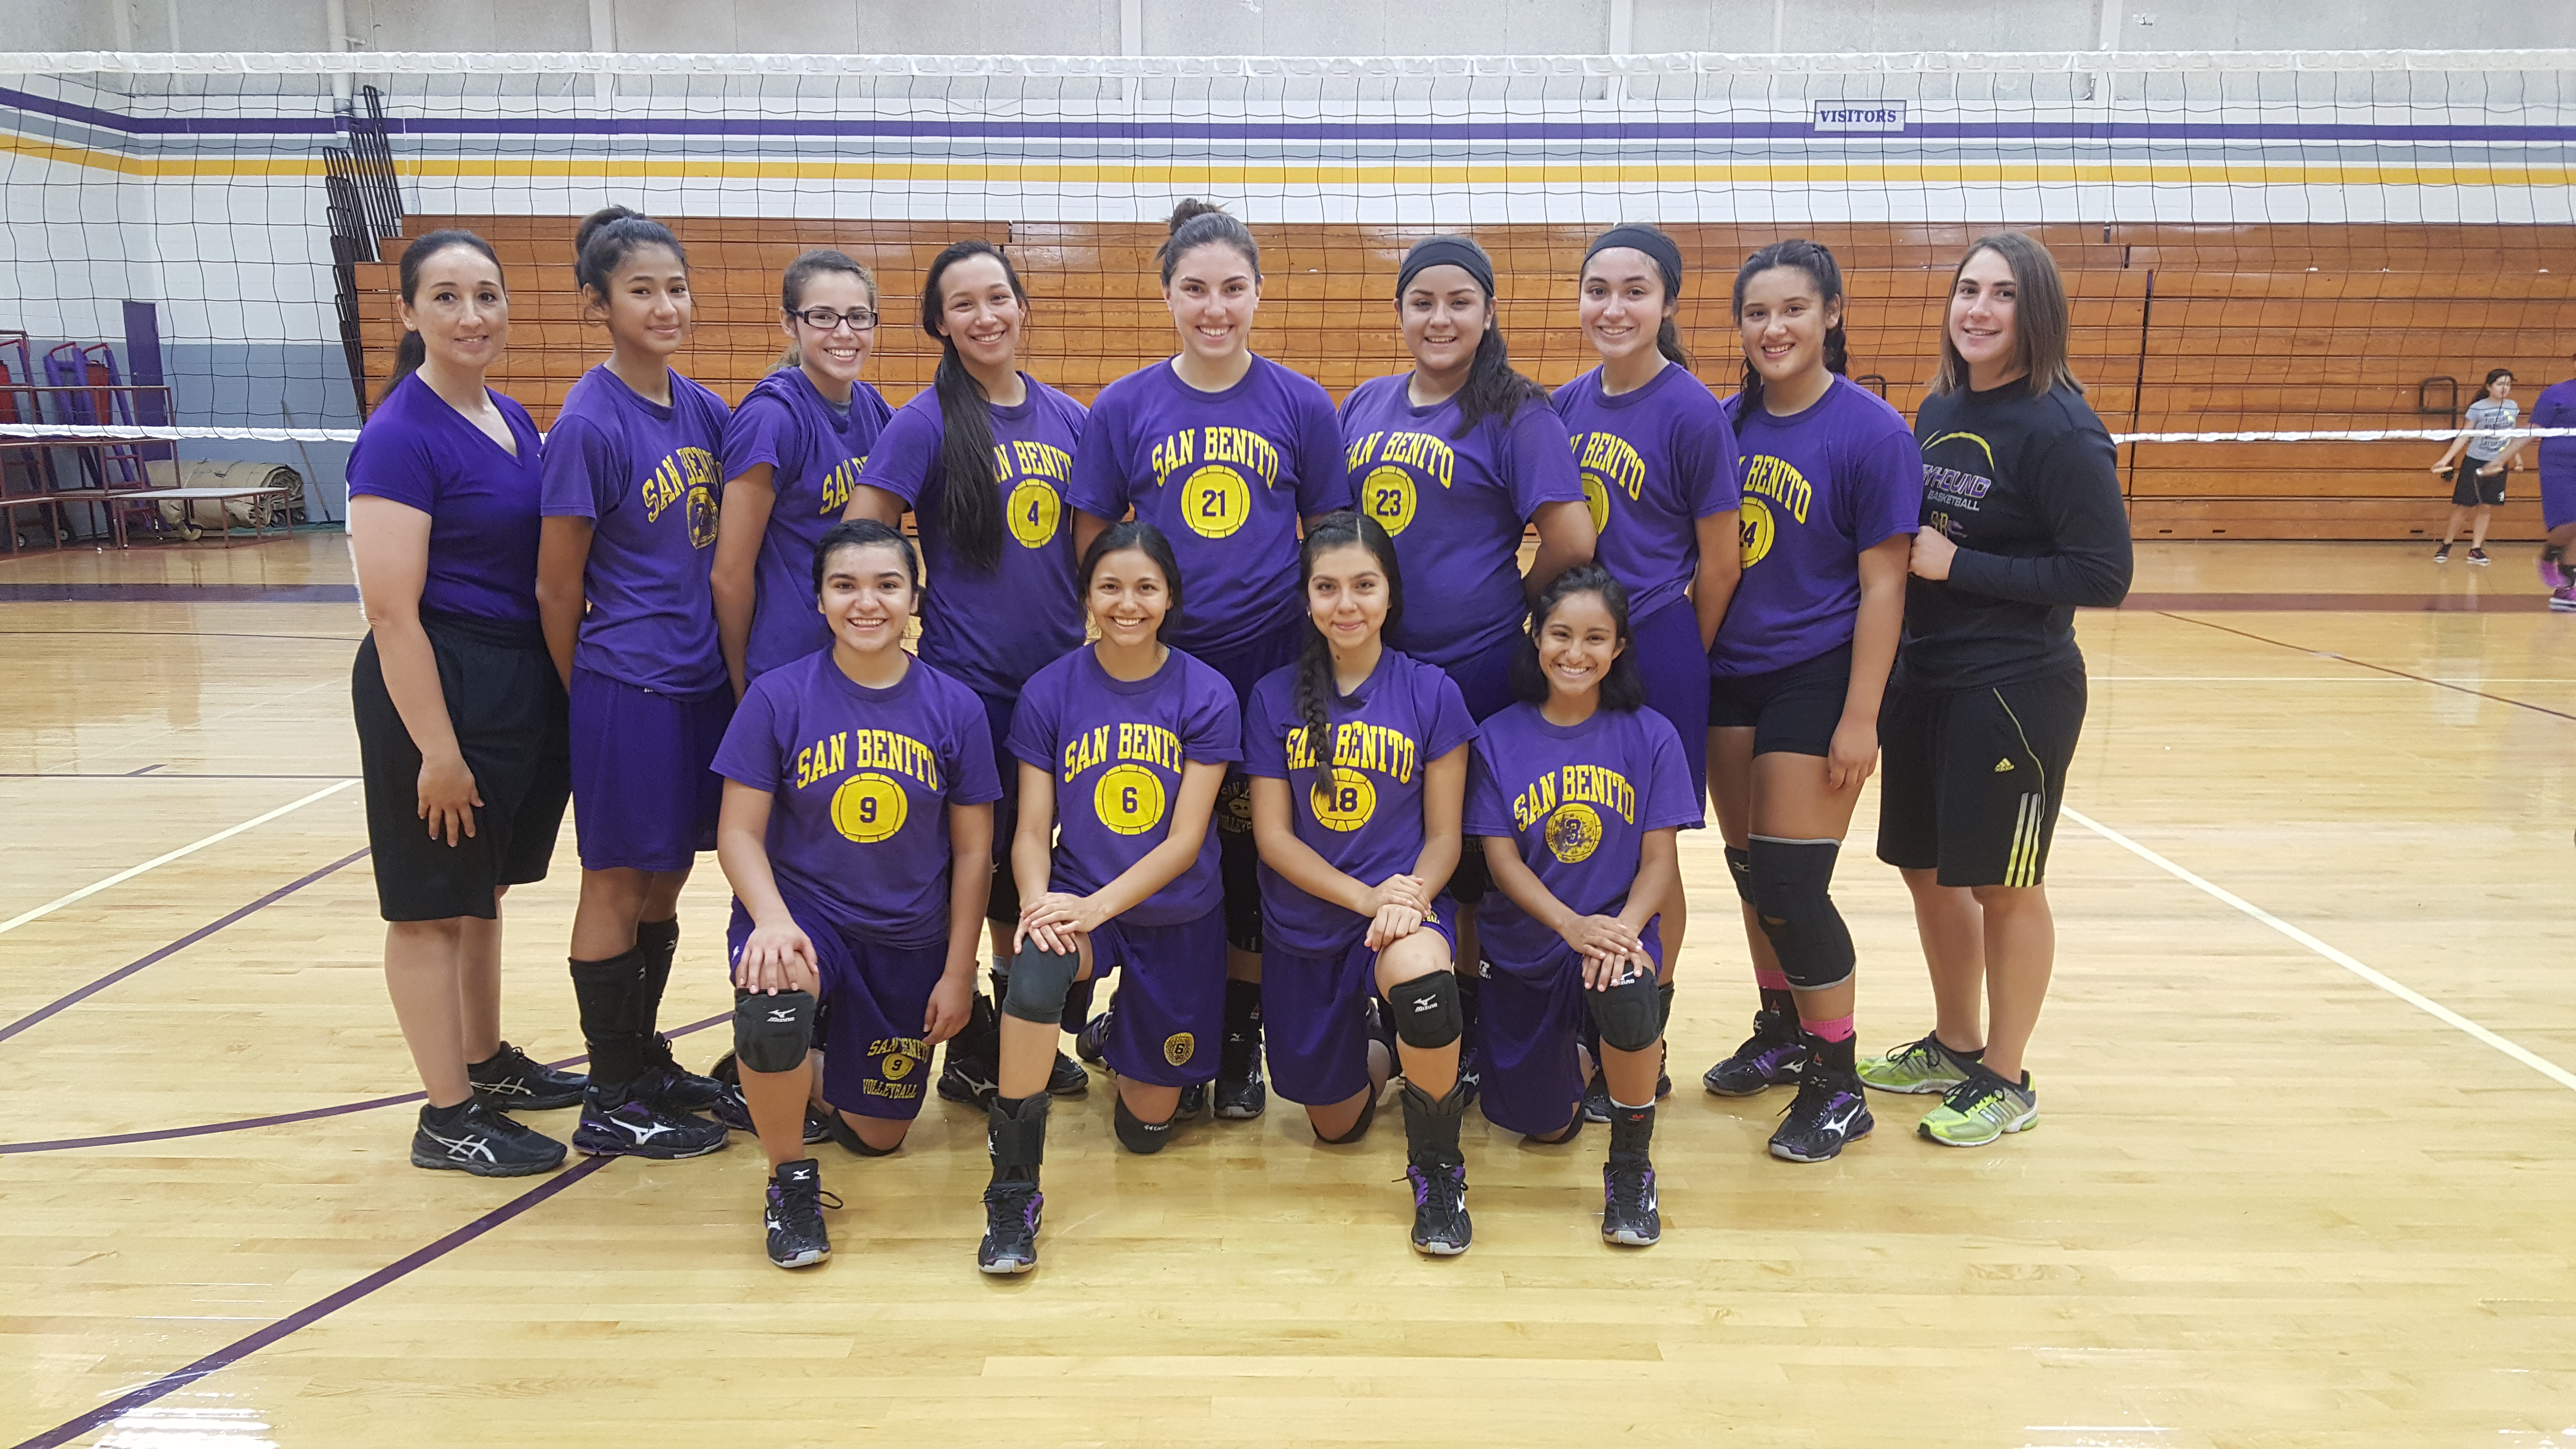 Heavy Hitters: Girls volleyball team looks to continue decade of success